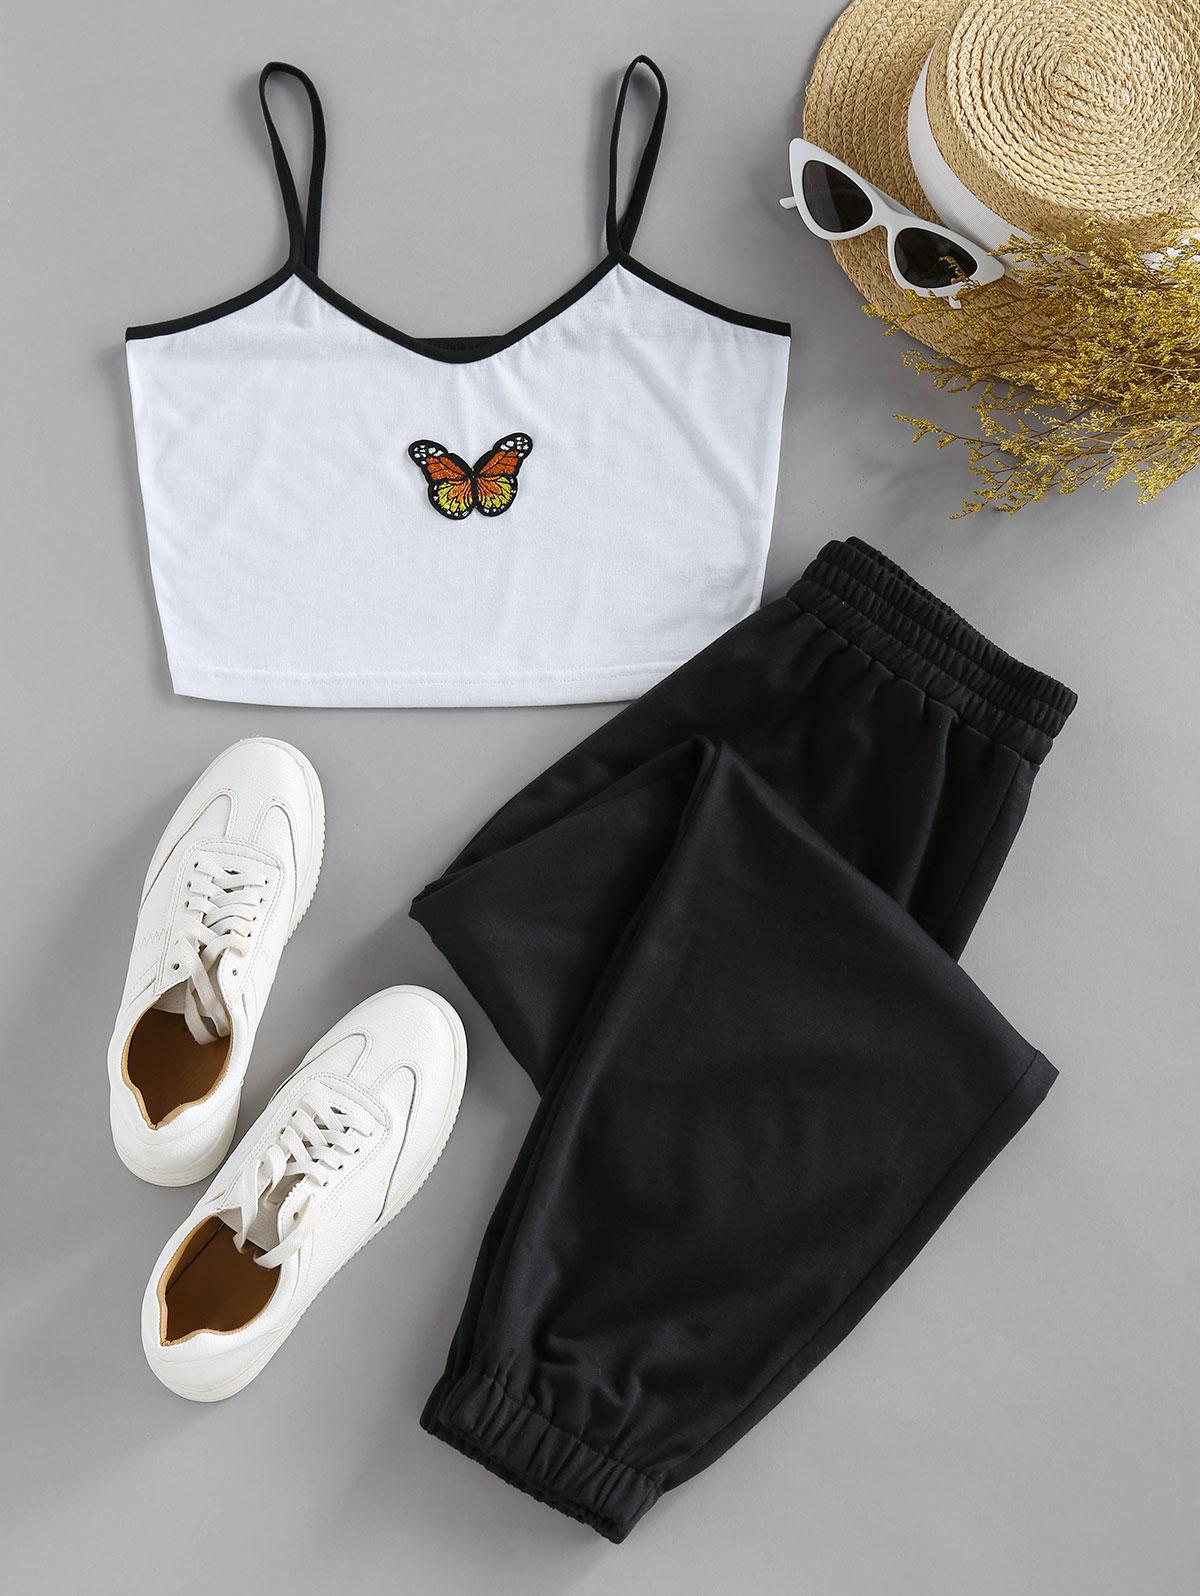 ZAFUL Butterfly Crop Top and Pants Two Piece Set